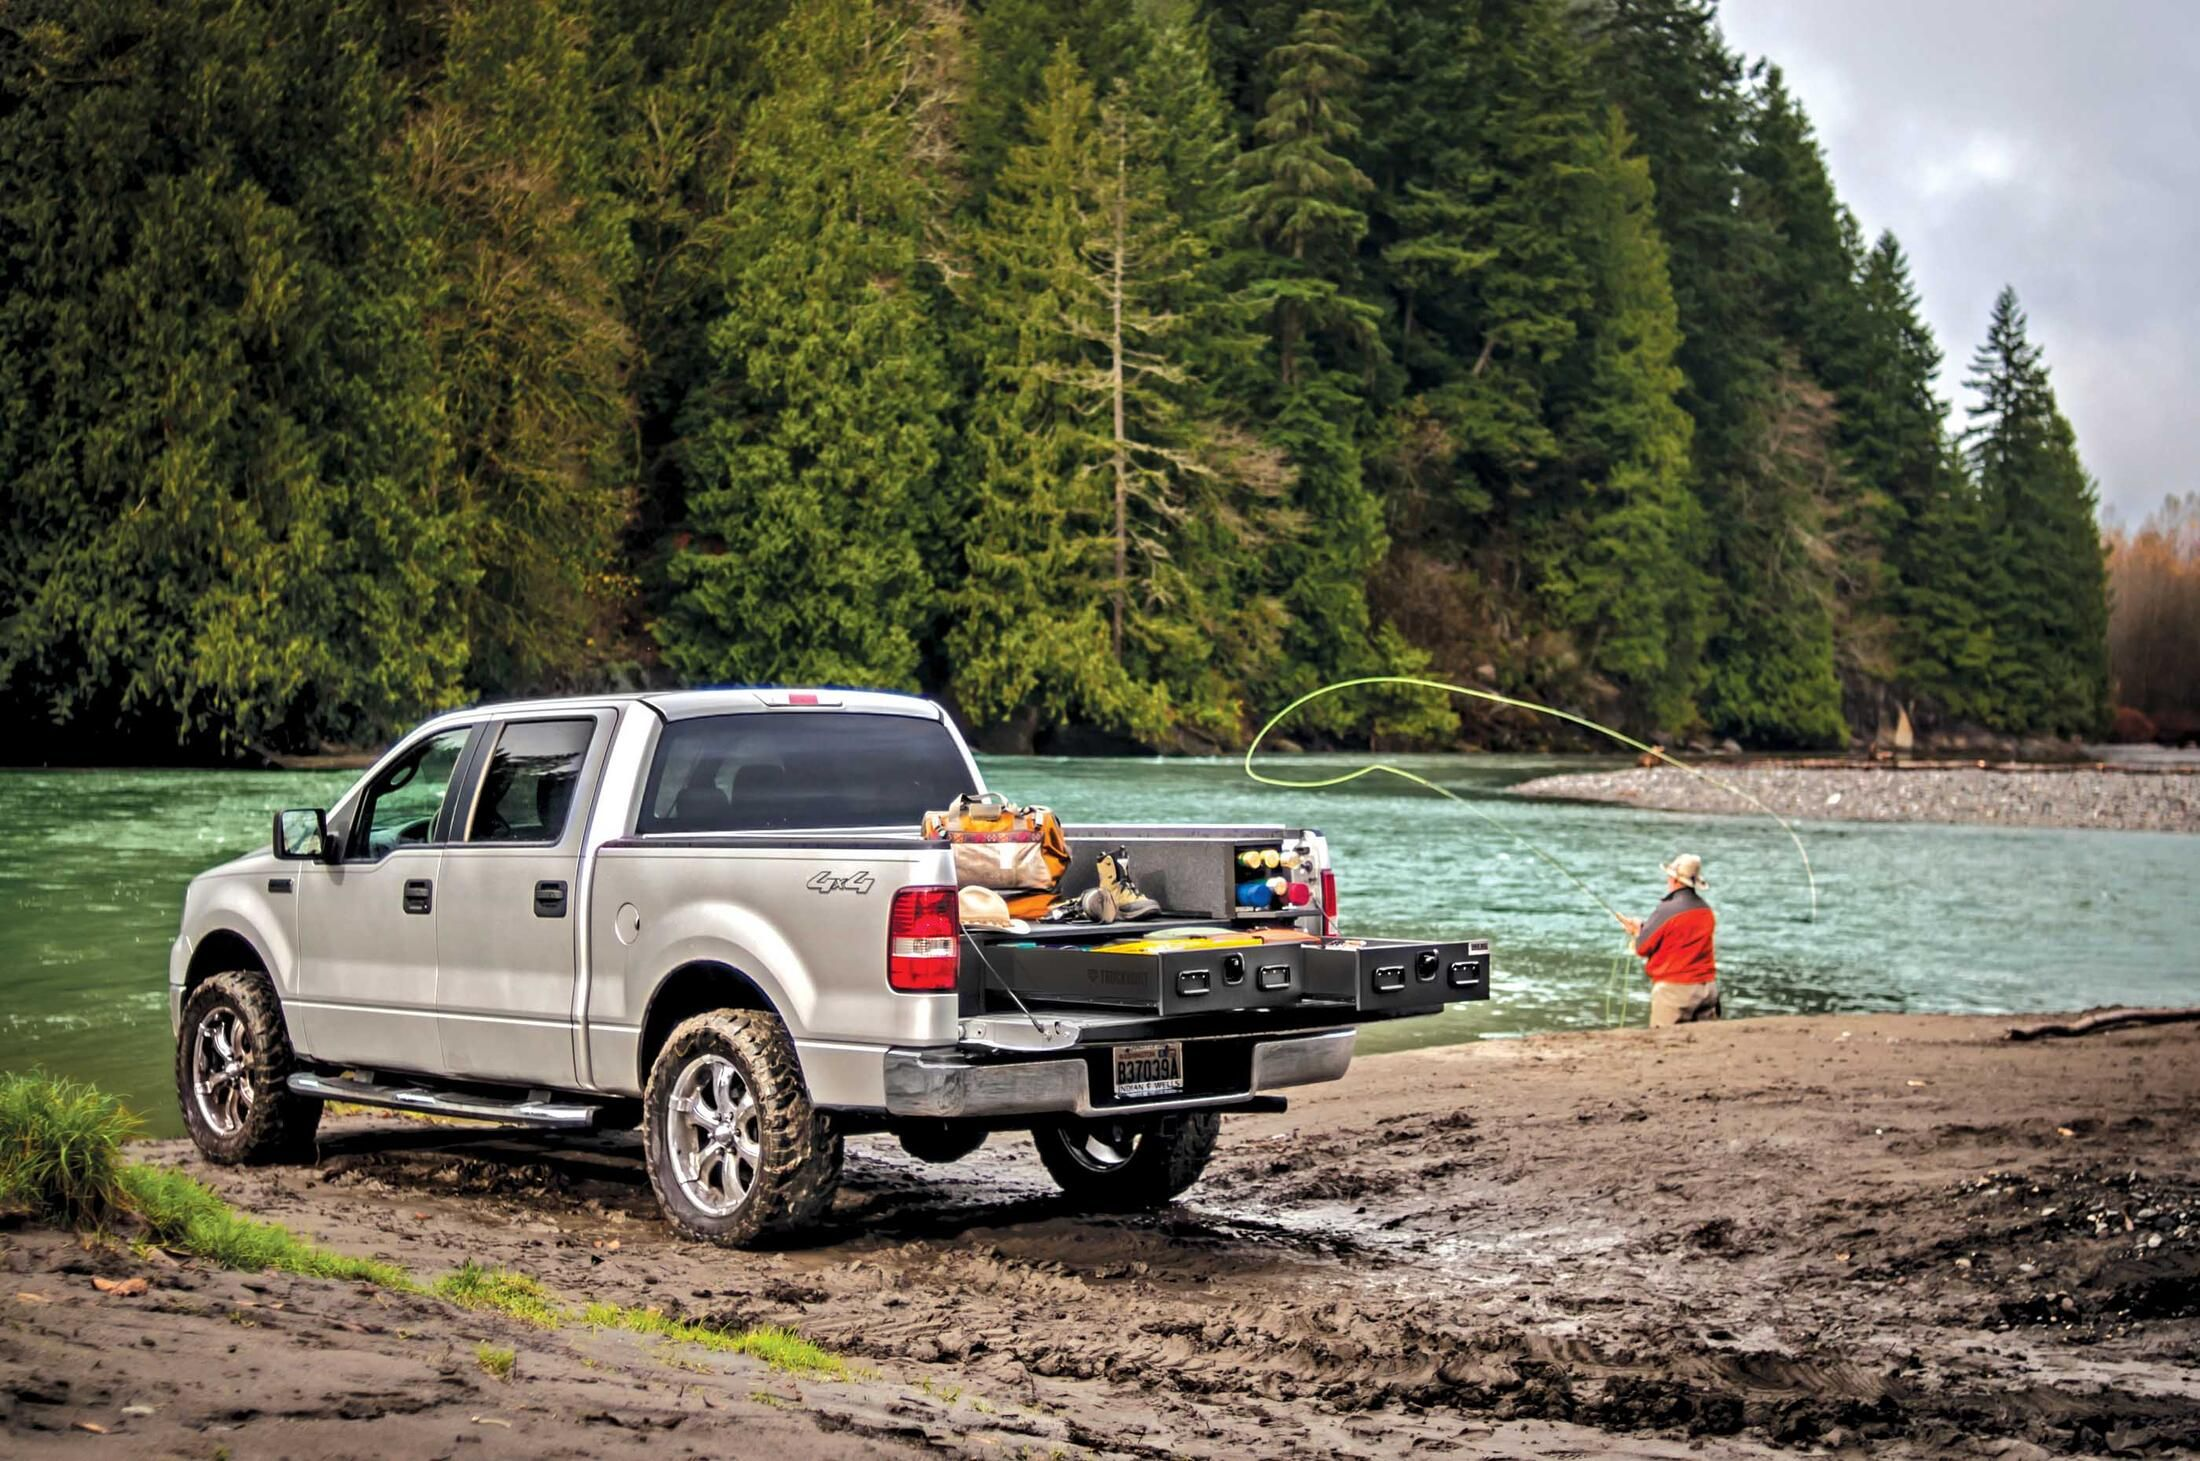 A Silver Ford F-150 filled with fishing gear and a man casting a line in the background.